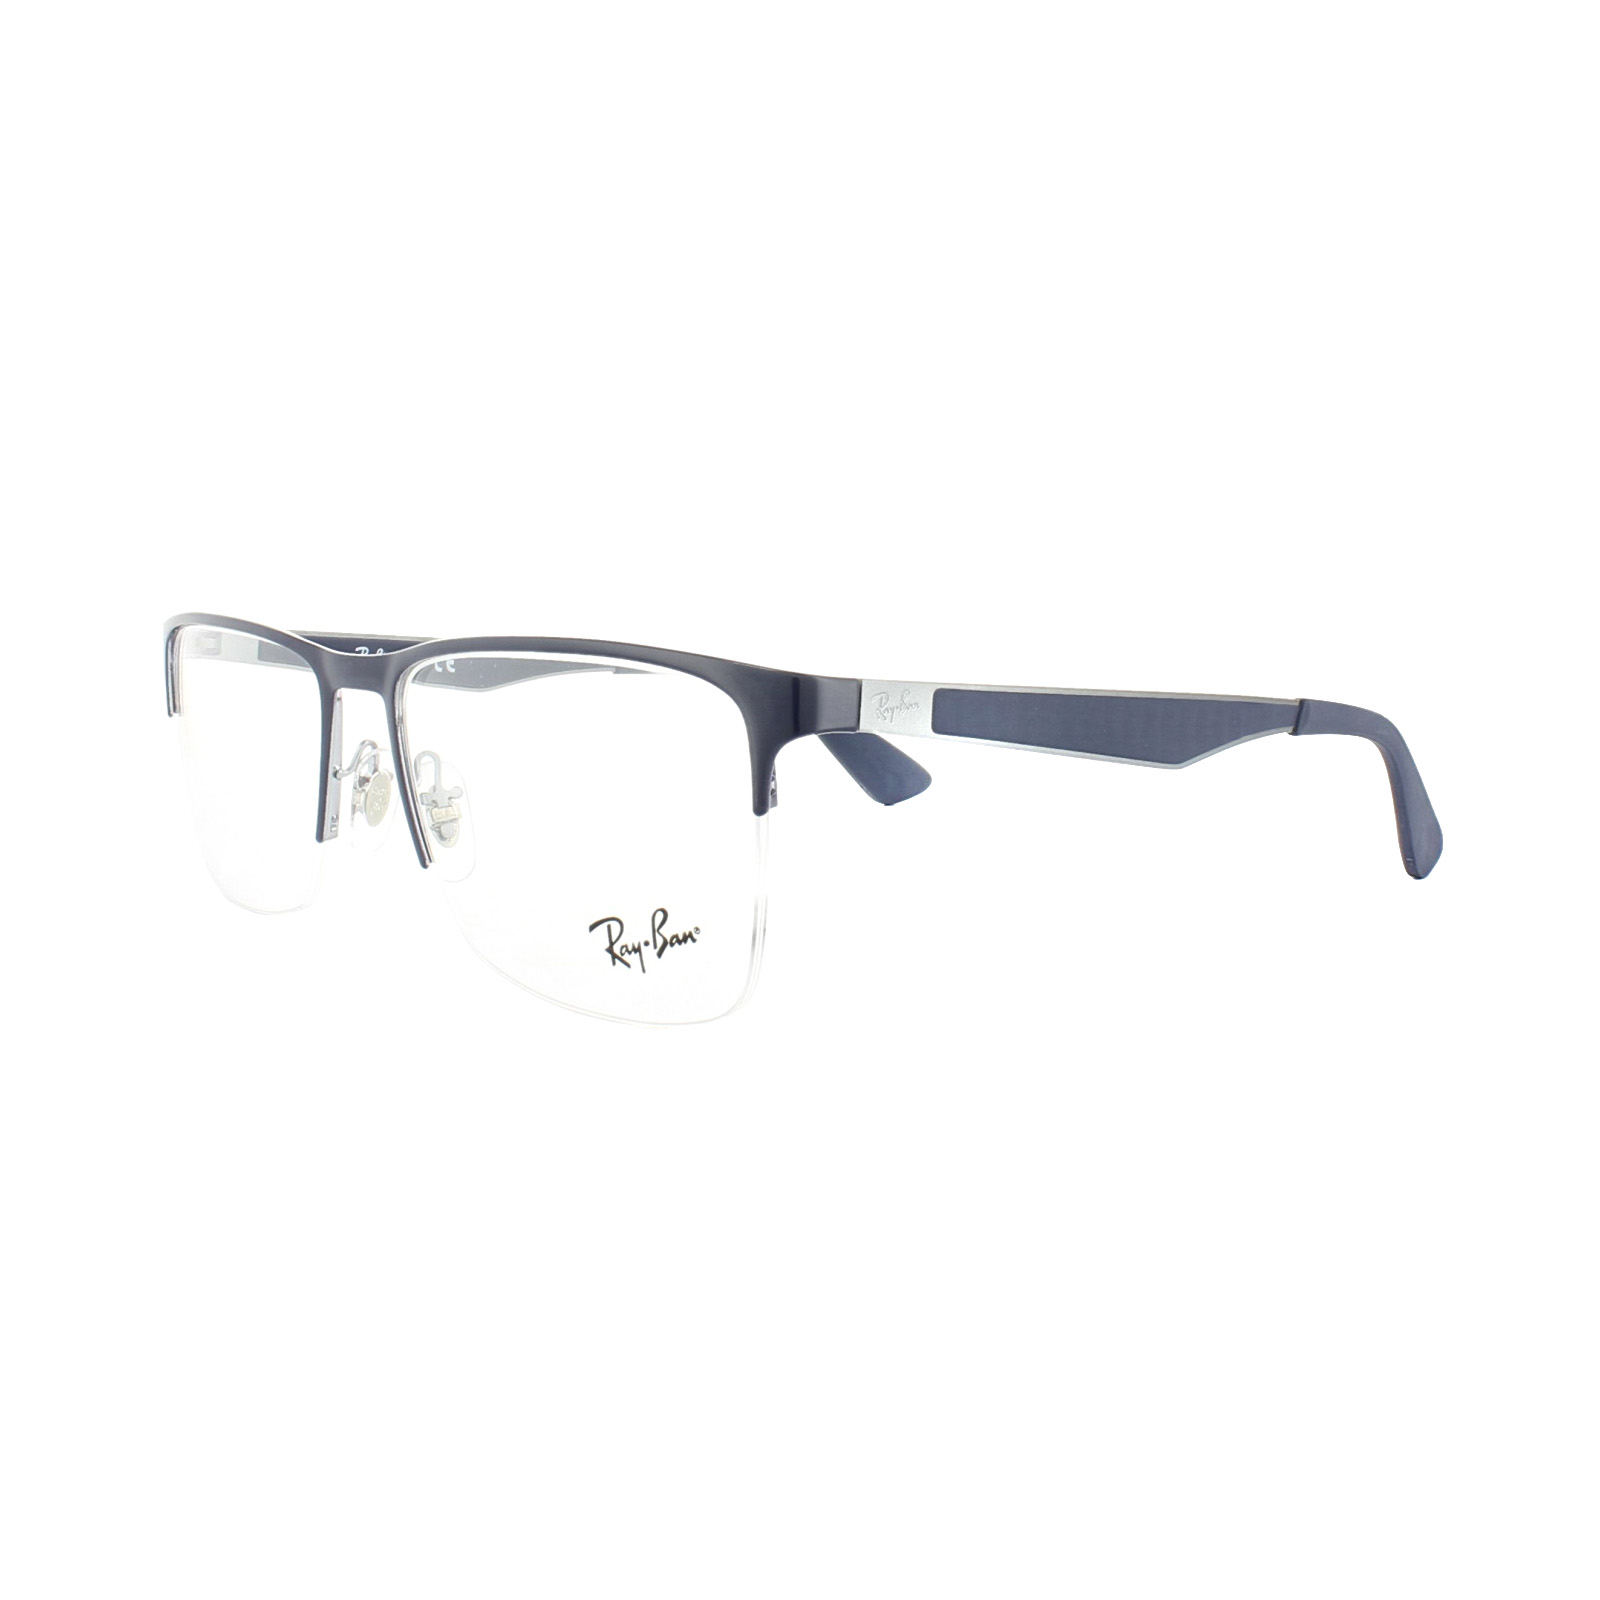 Details About Ray Ban Glasses Frames 6335 2947 Gunmetal Top Blue Mens 56mm